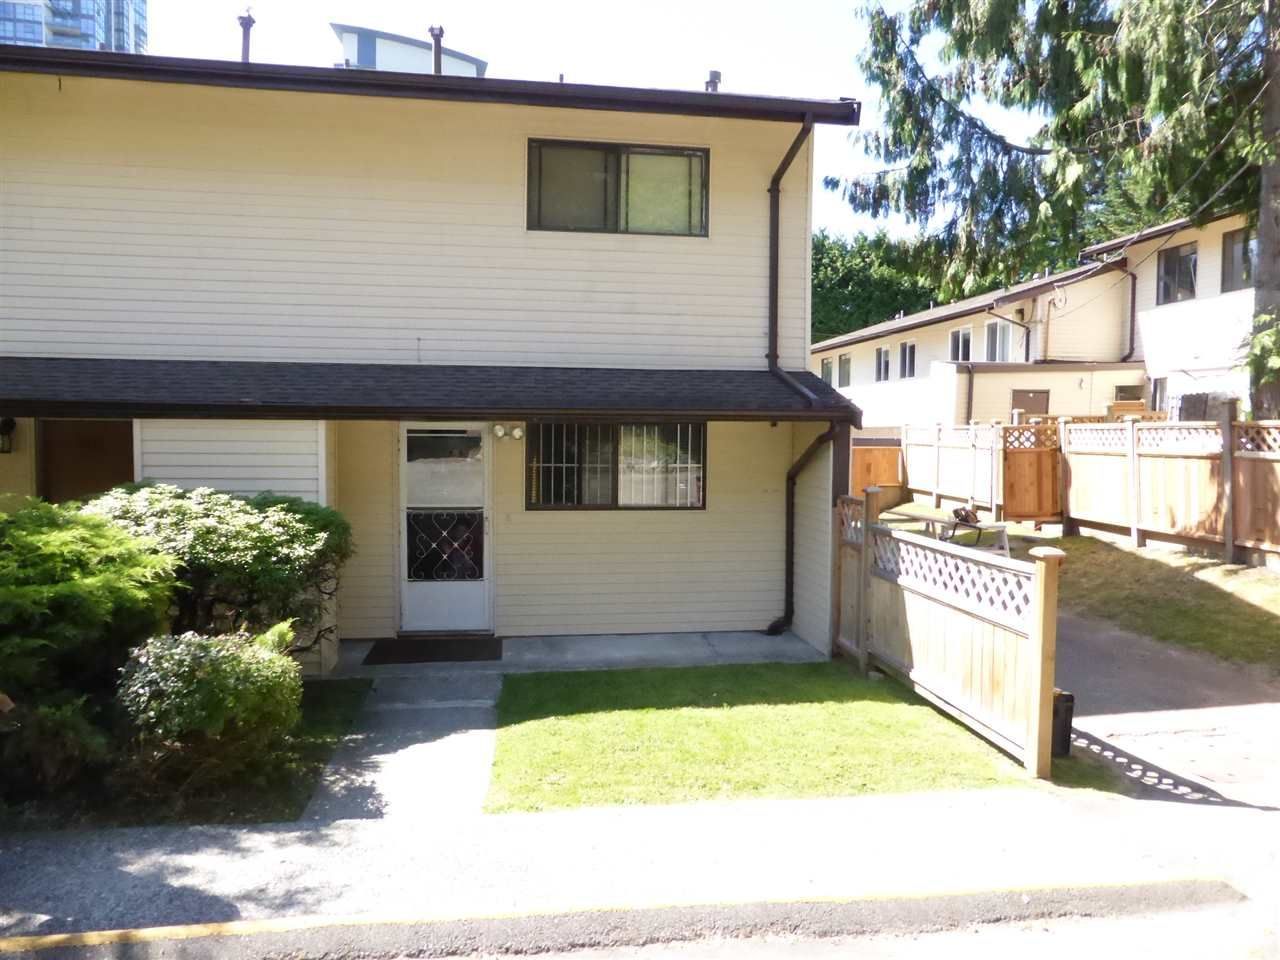 Main Photo: 2035 HOLDOM Avenue in Burnaby: Parkcrest Townhouse for sale (Burnaby North)  : MLS®# R2185341